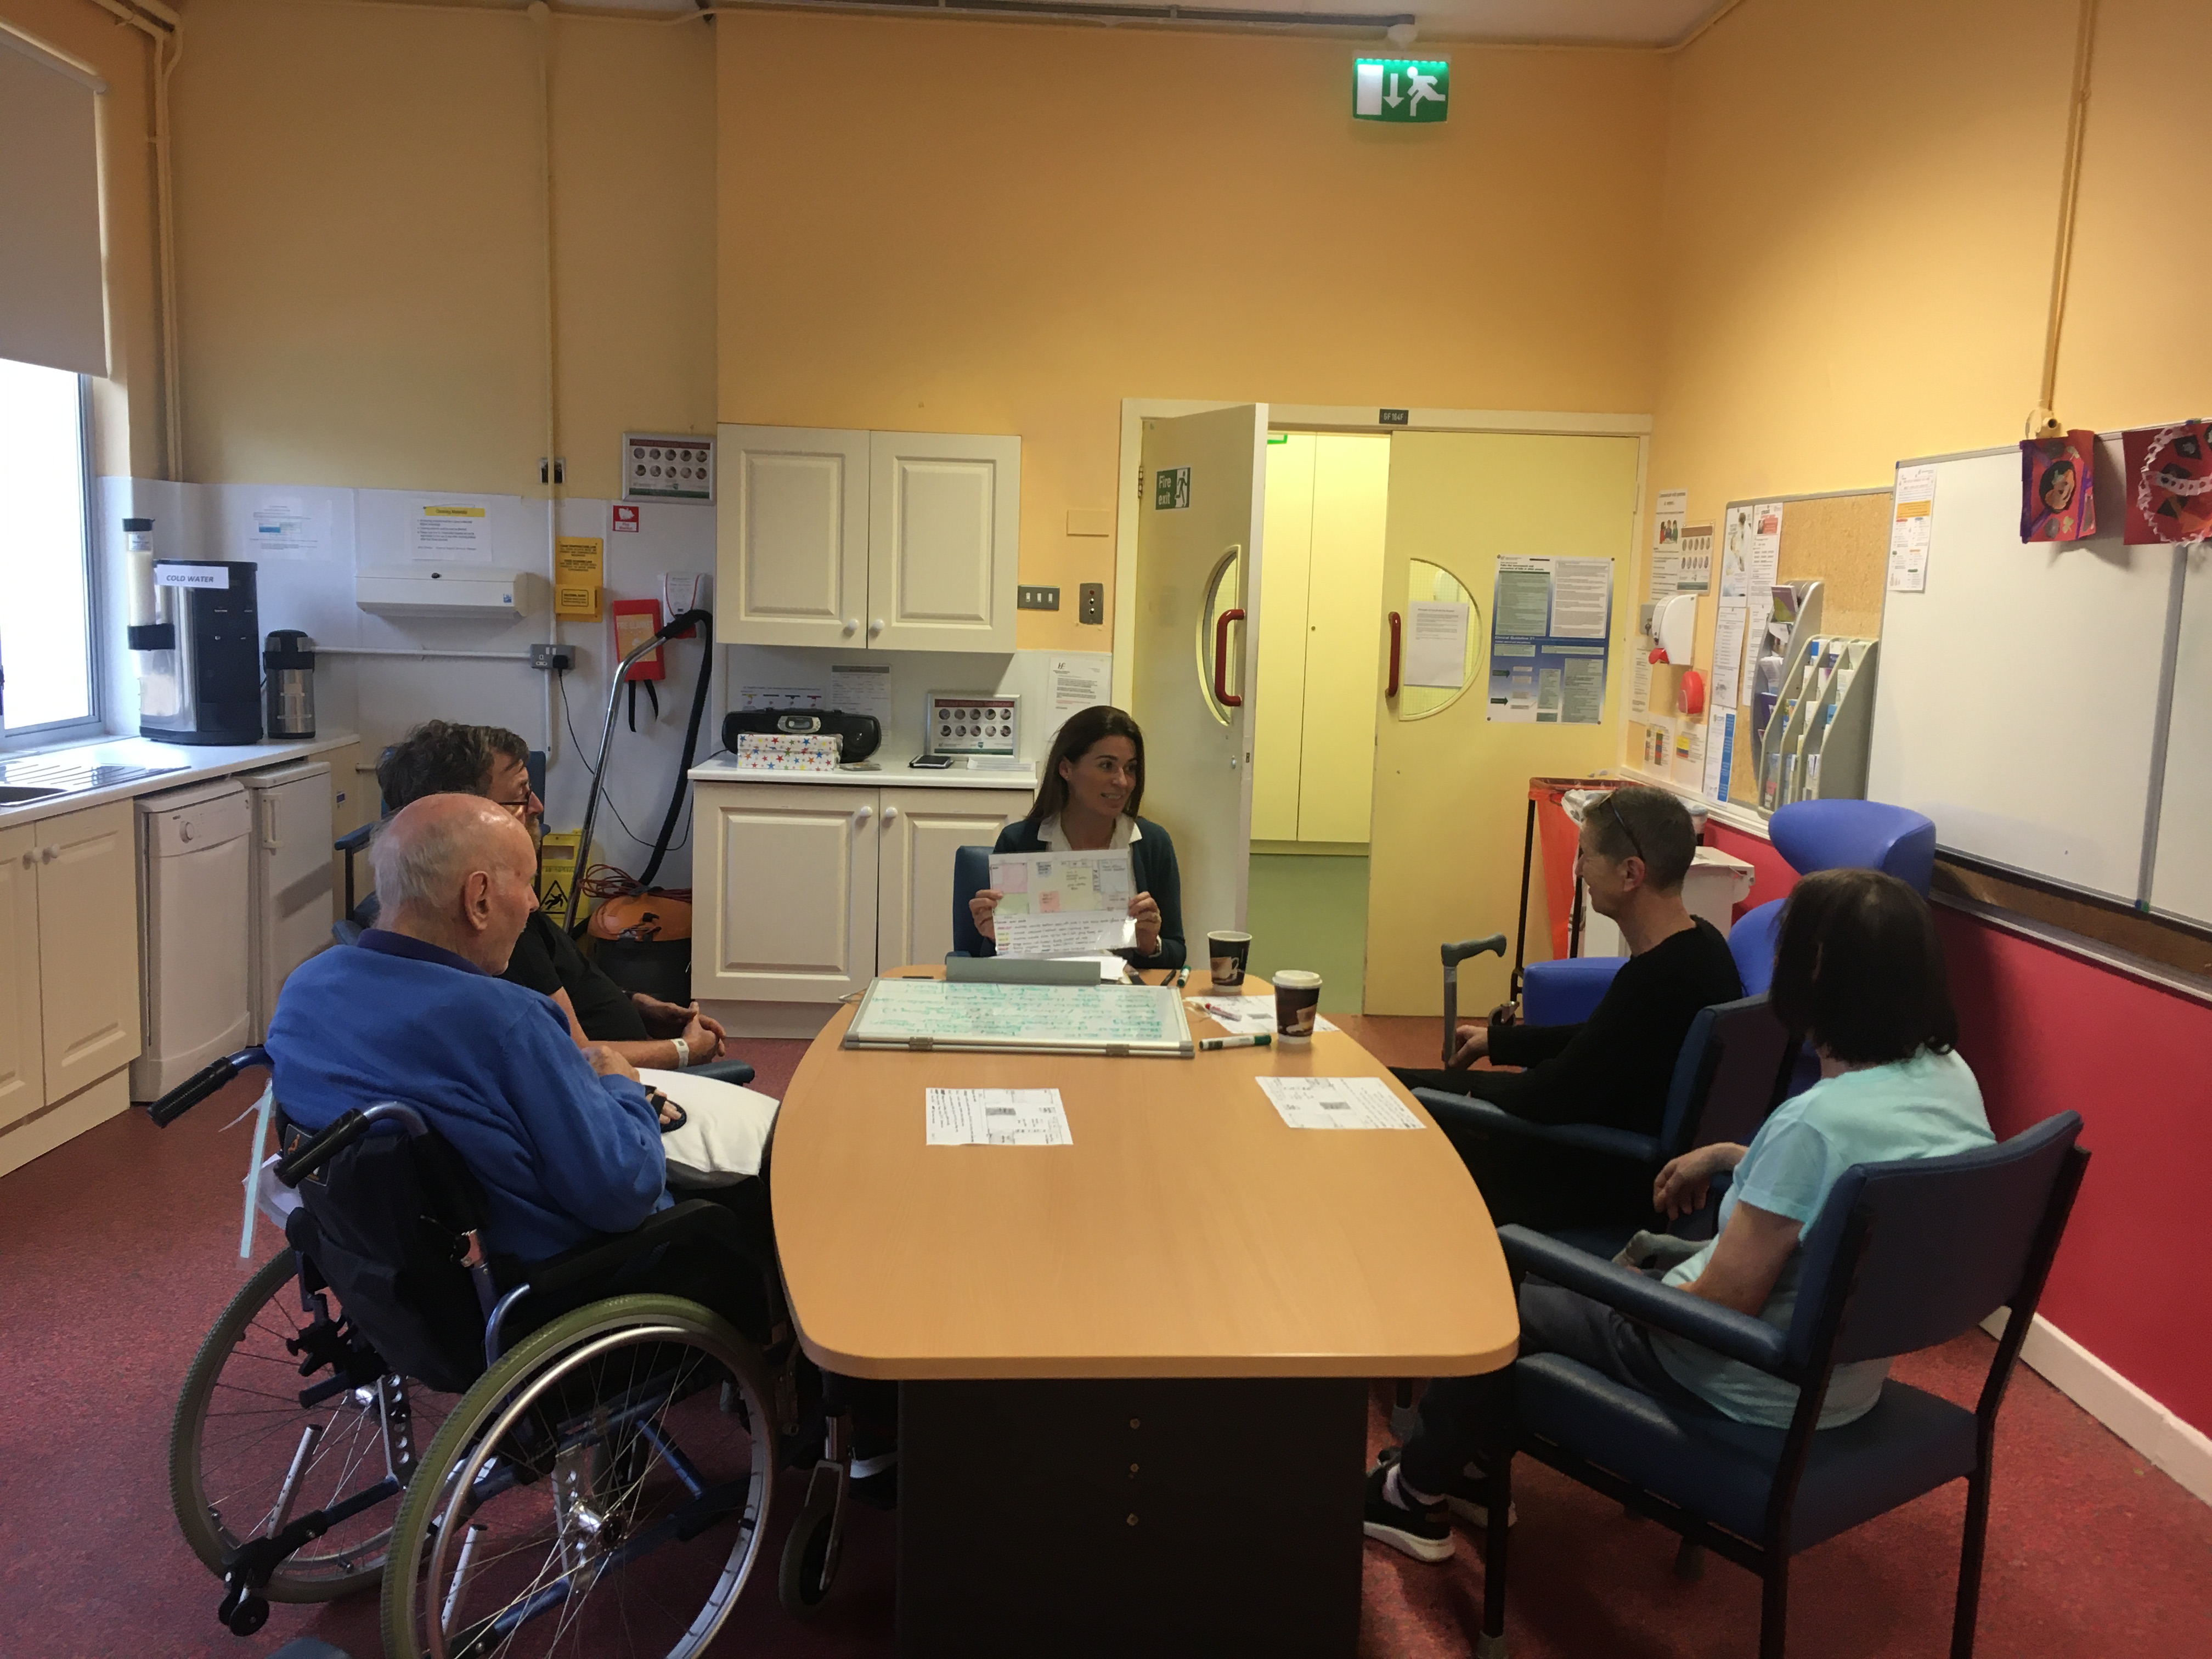 A focus group for service users to discuss what they would like from the new rehabilitation facilities